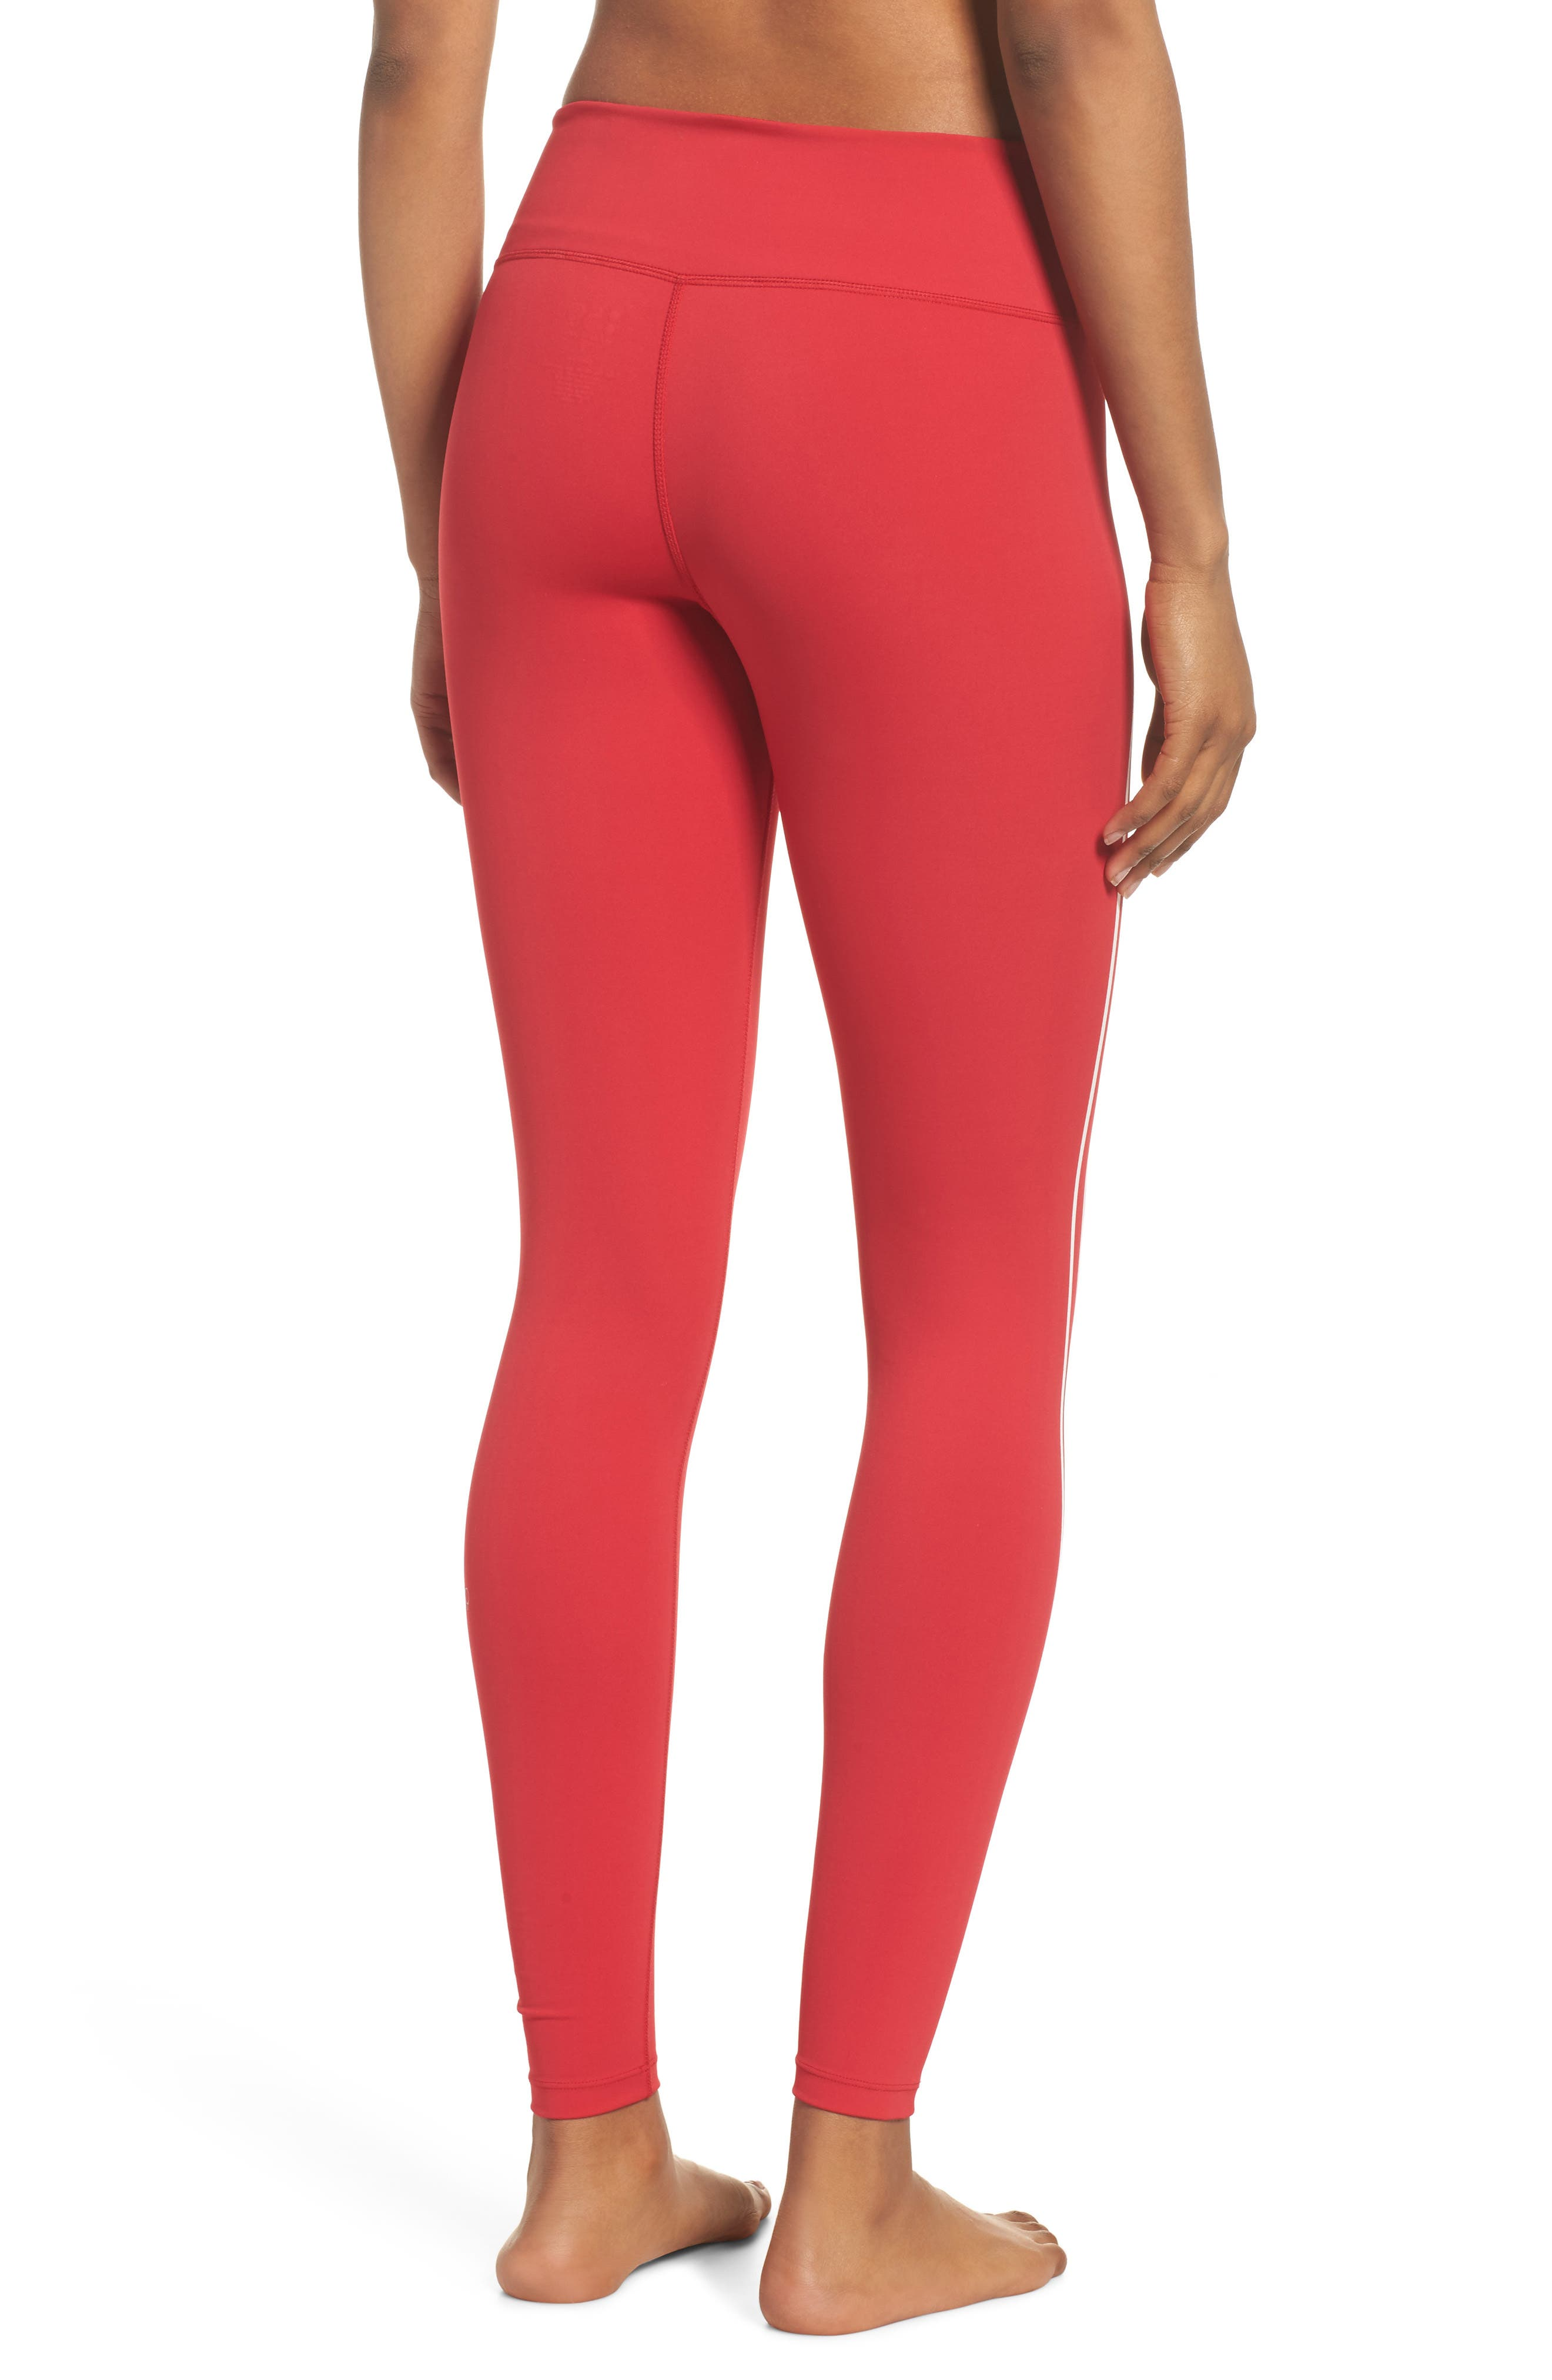 Distance Tights,                             Alternate thumbnail 2, color,                             Havana Red/ Off White